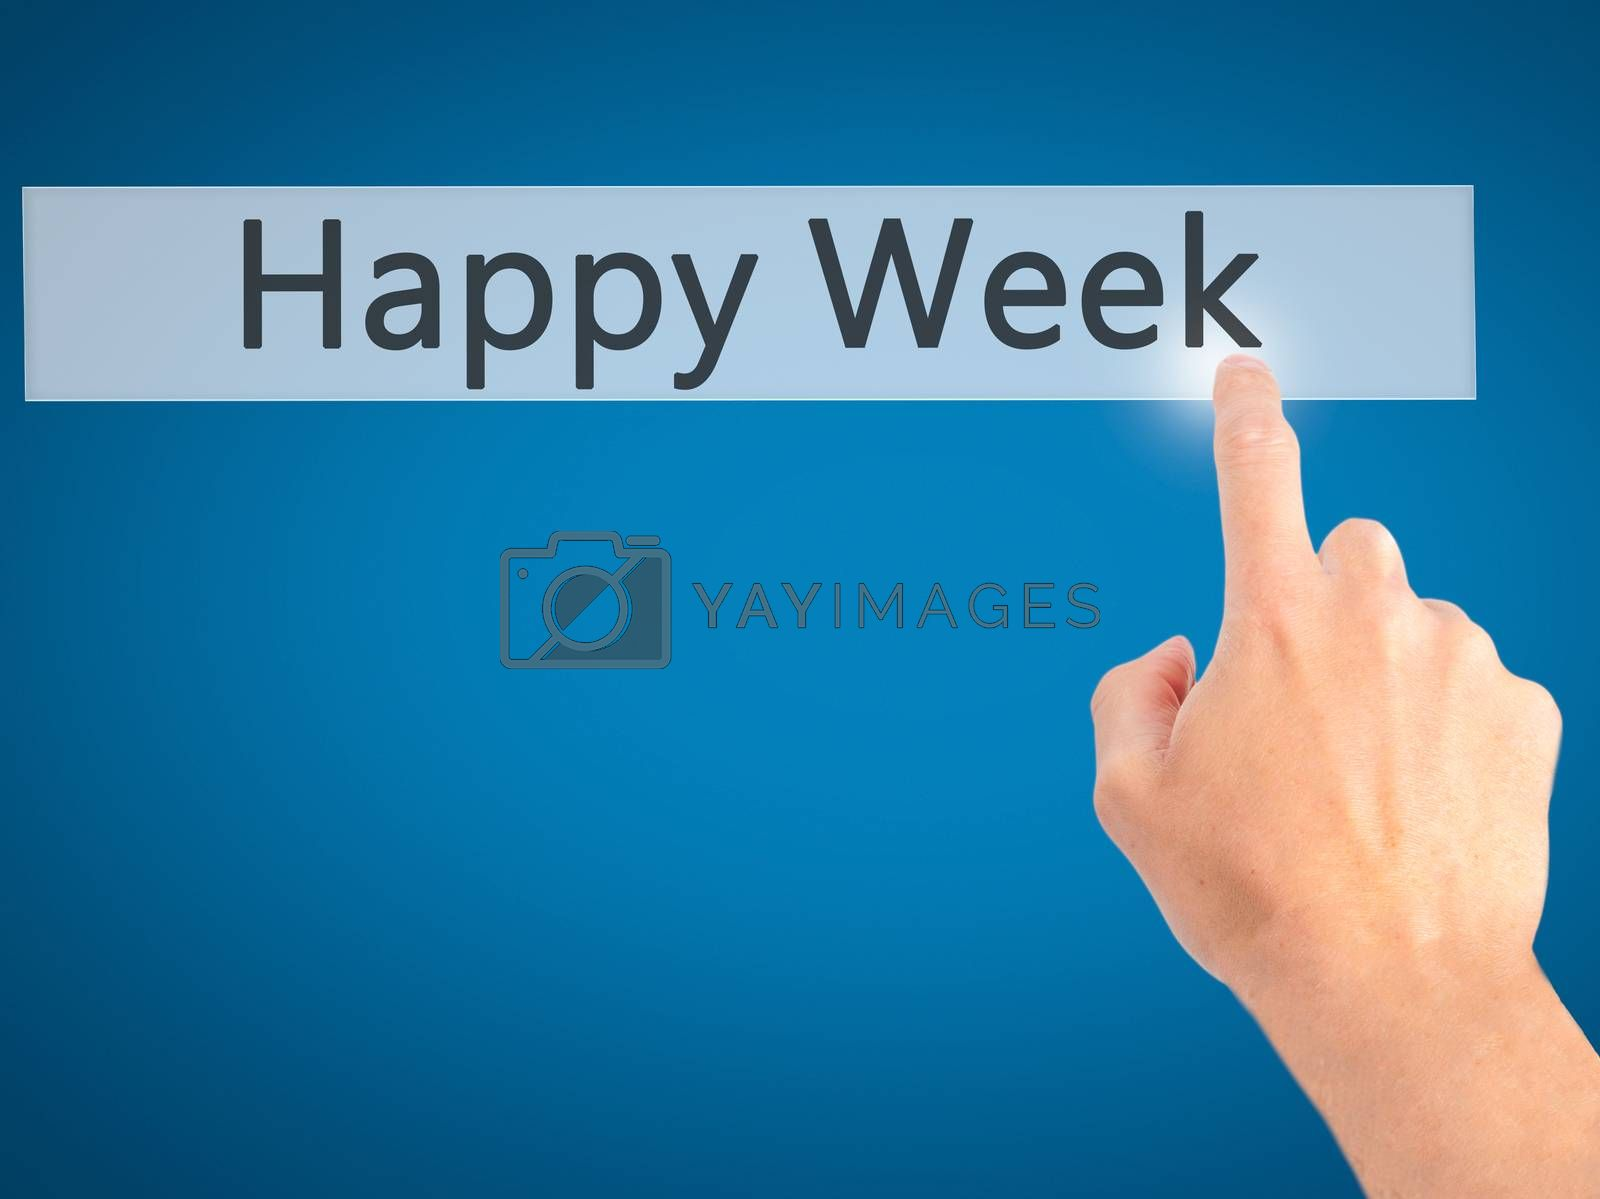 Happy Week - Hand pressing a button on blurred background concep by jackald